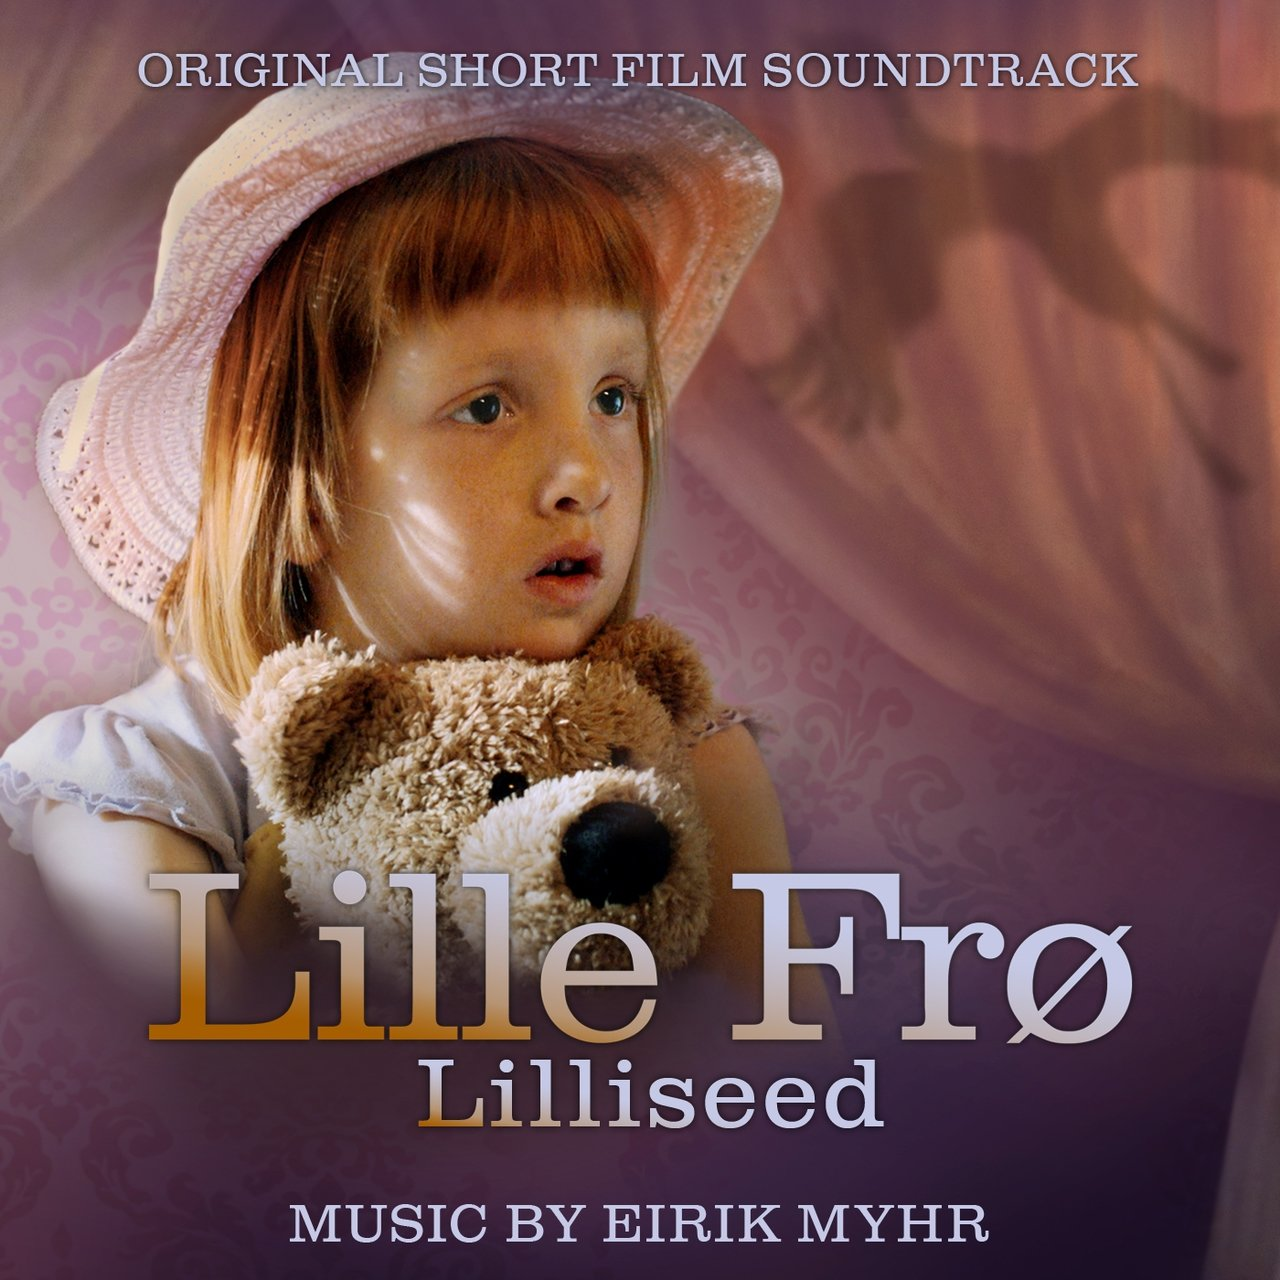 Lille Frø (Lilliseed) - Original Short Film Soundtrack